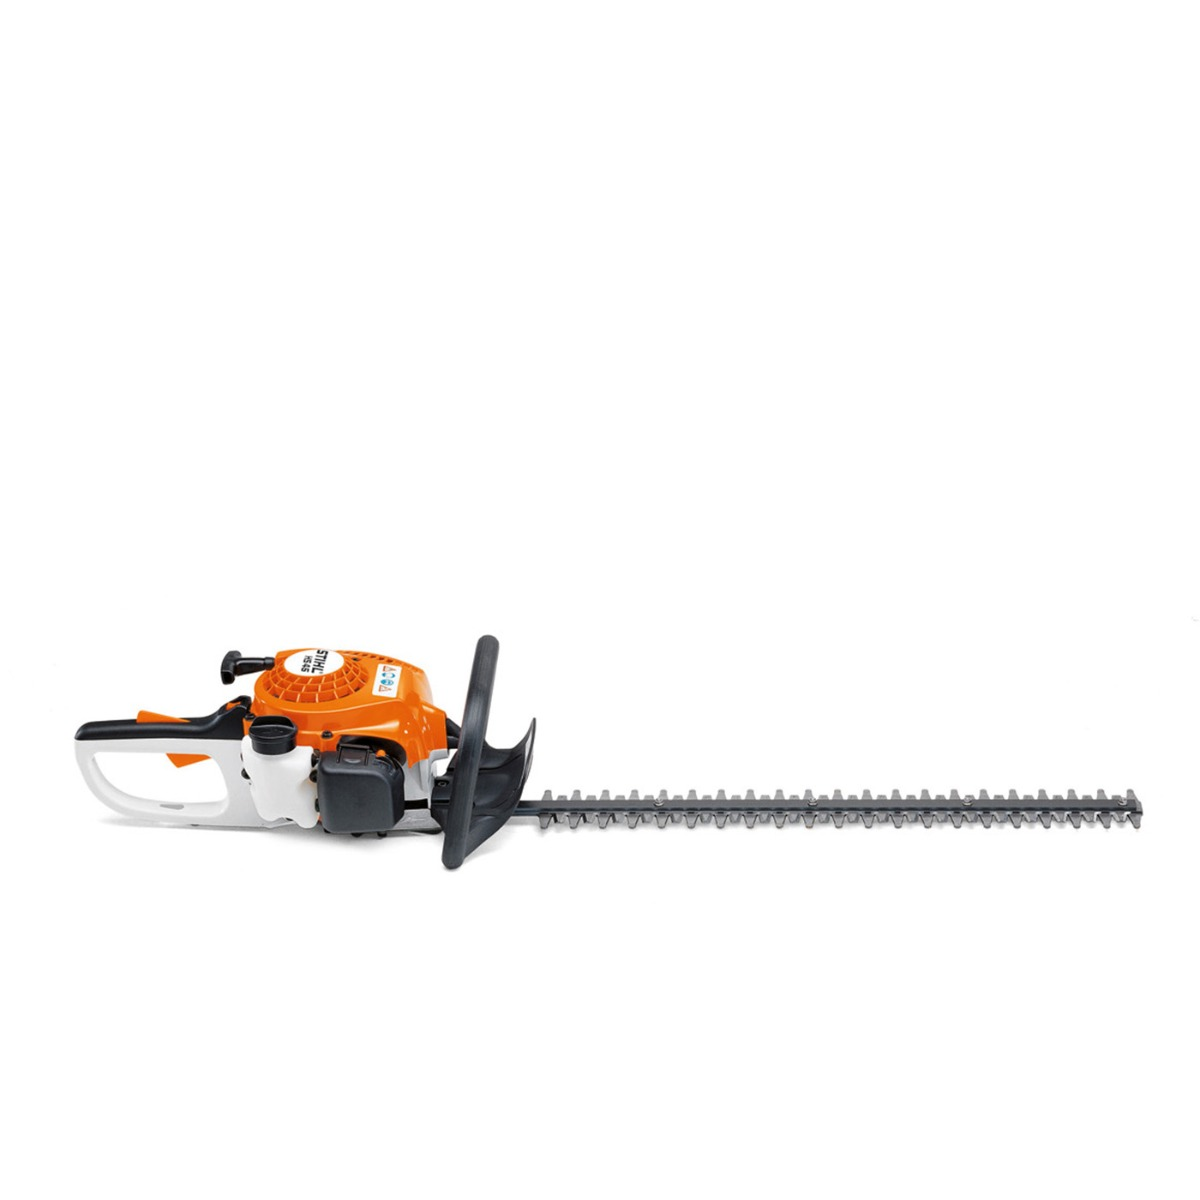 STIHL HS 45 600MM PETROL HEDGE TRIMMER